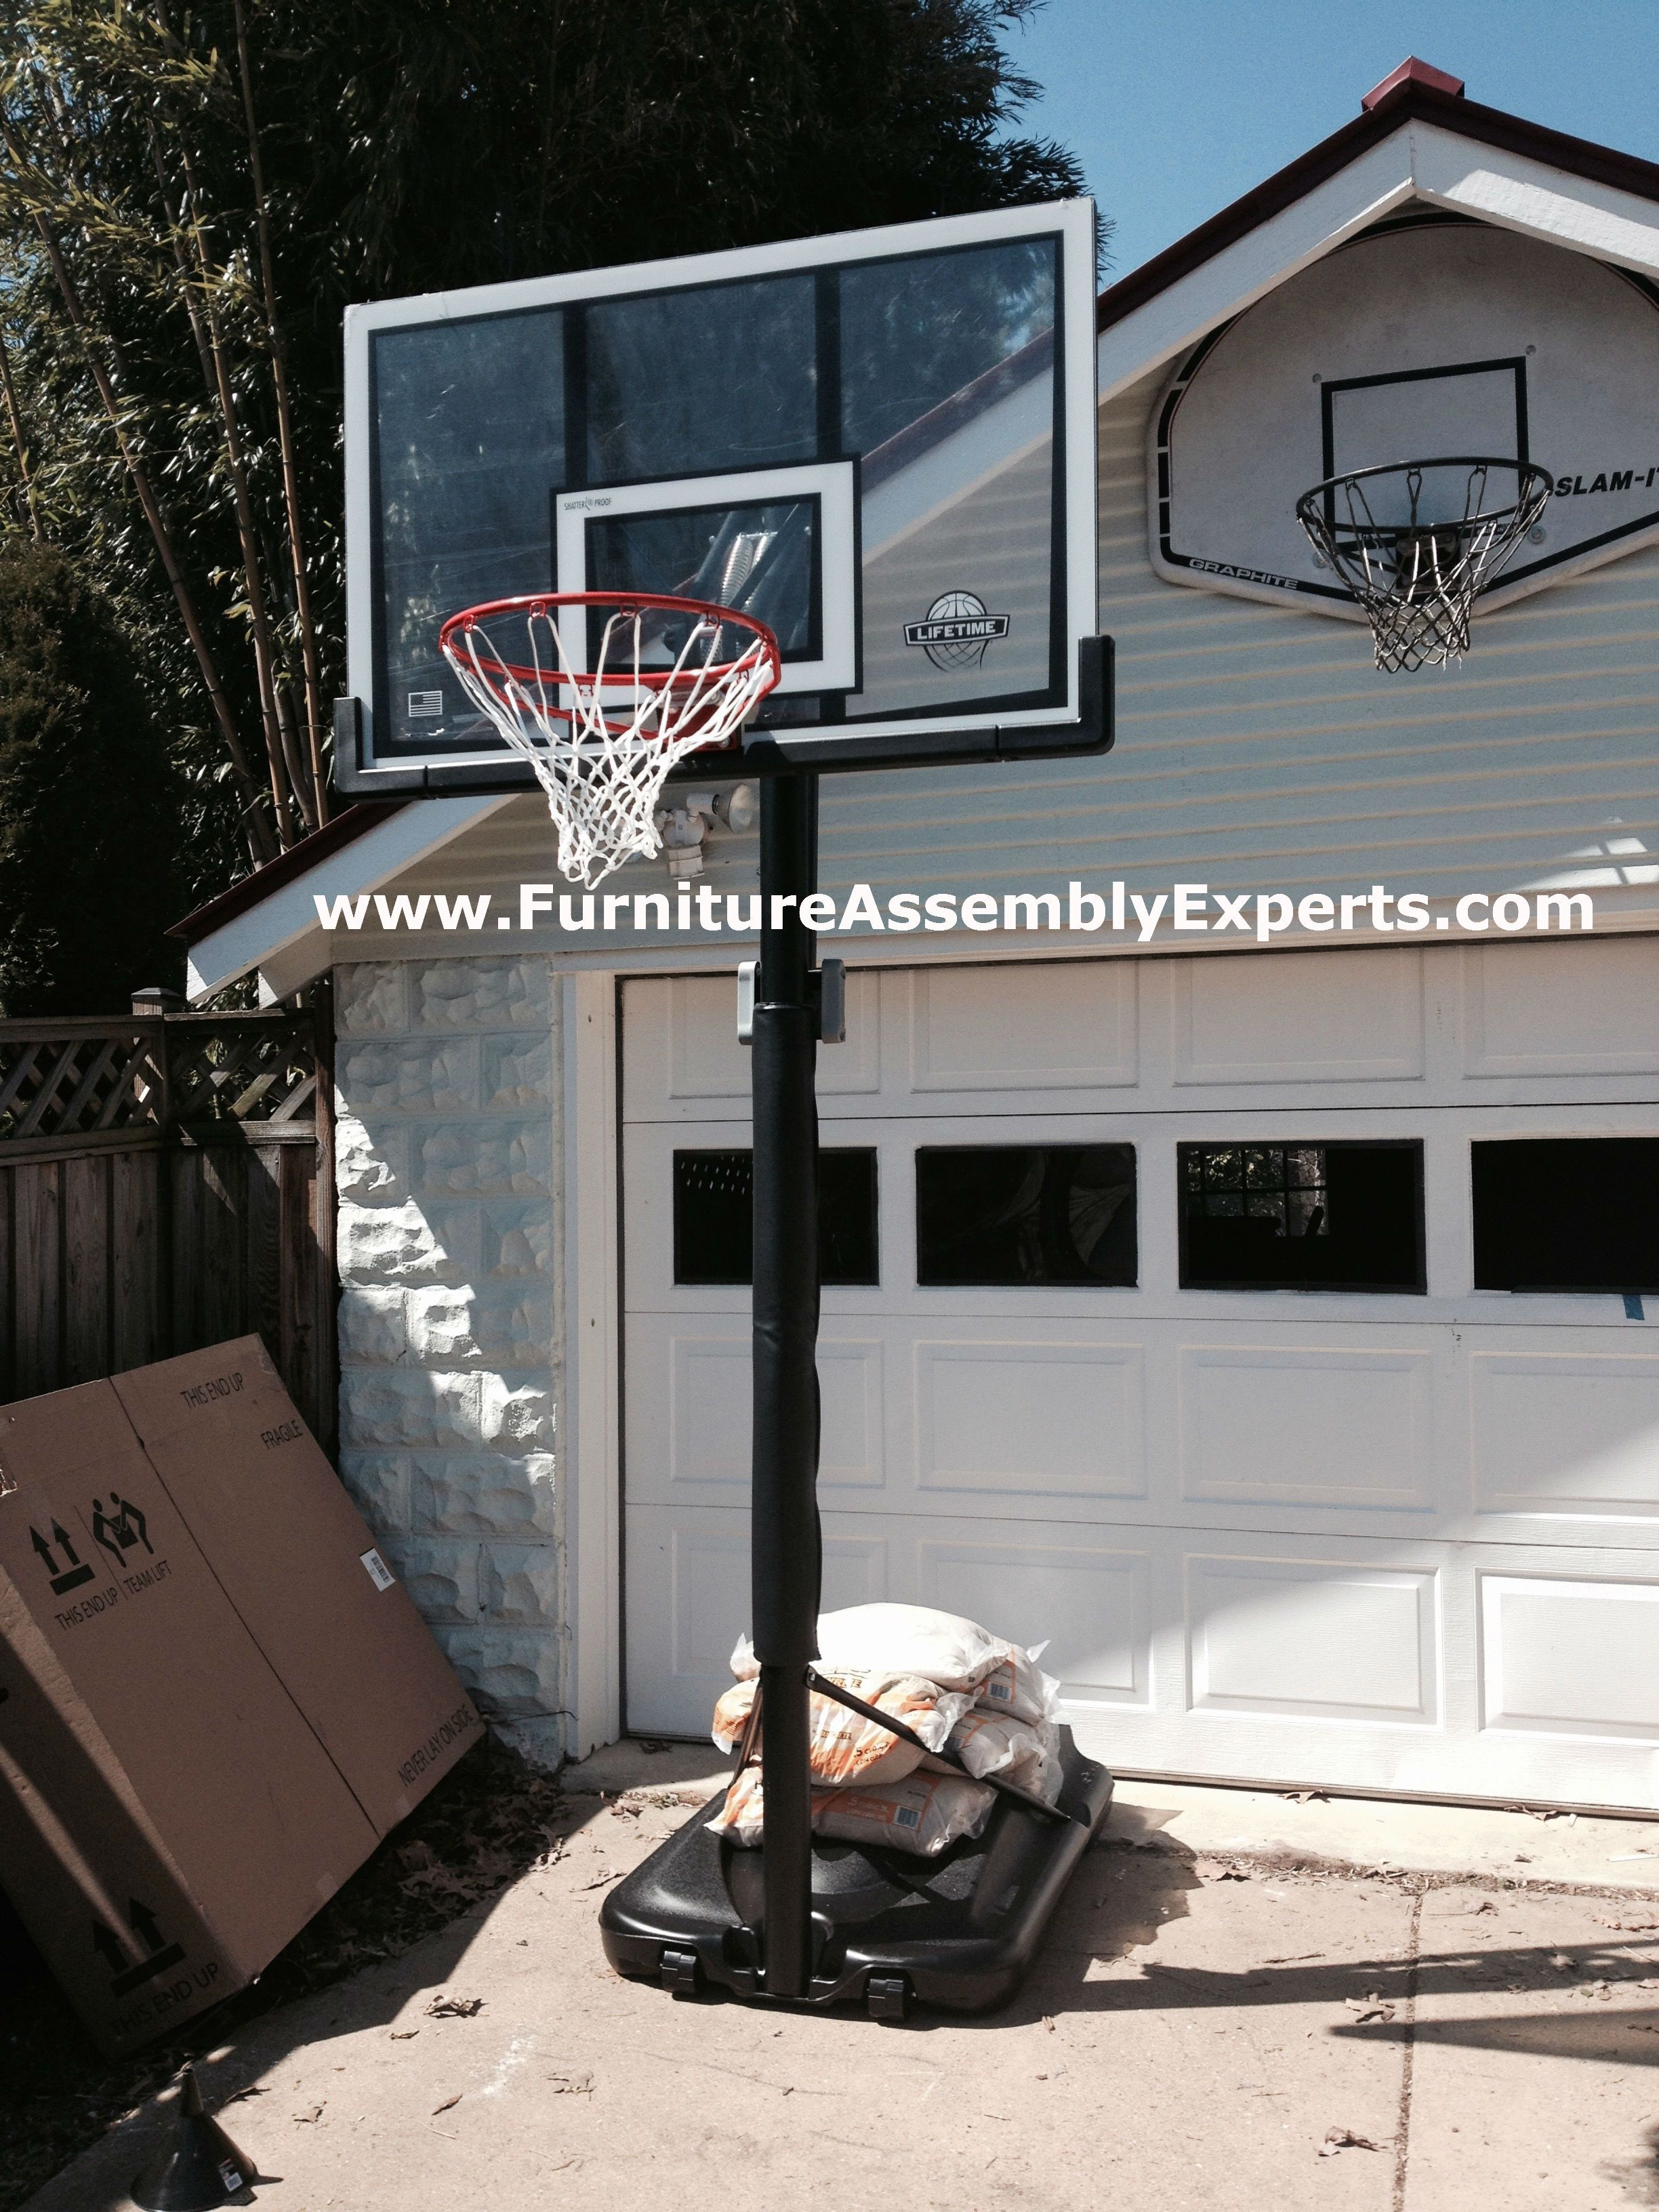 Costco Lifetime Portable Basketball Hoop Assembled In Woodbridge Va By Furniture Assembly Experts Llc Furniture Assembly Indoor Sauna Portable Basketball Hoop